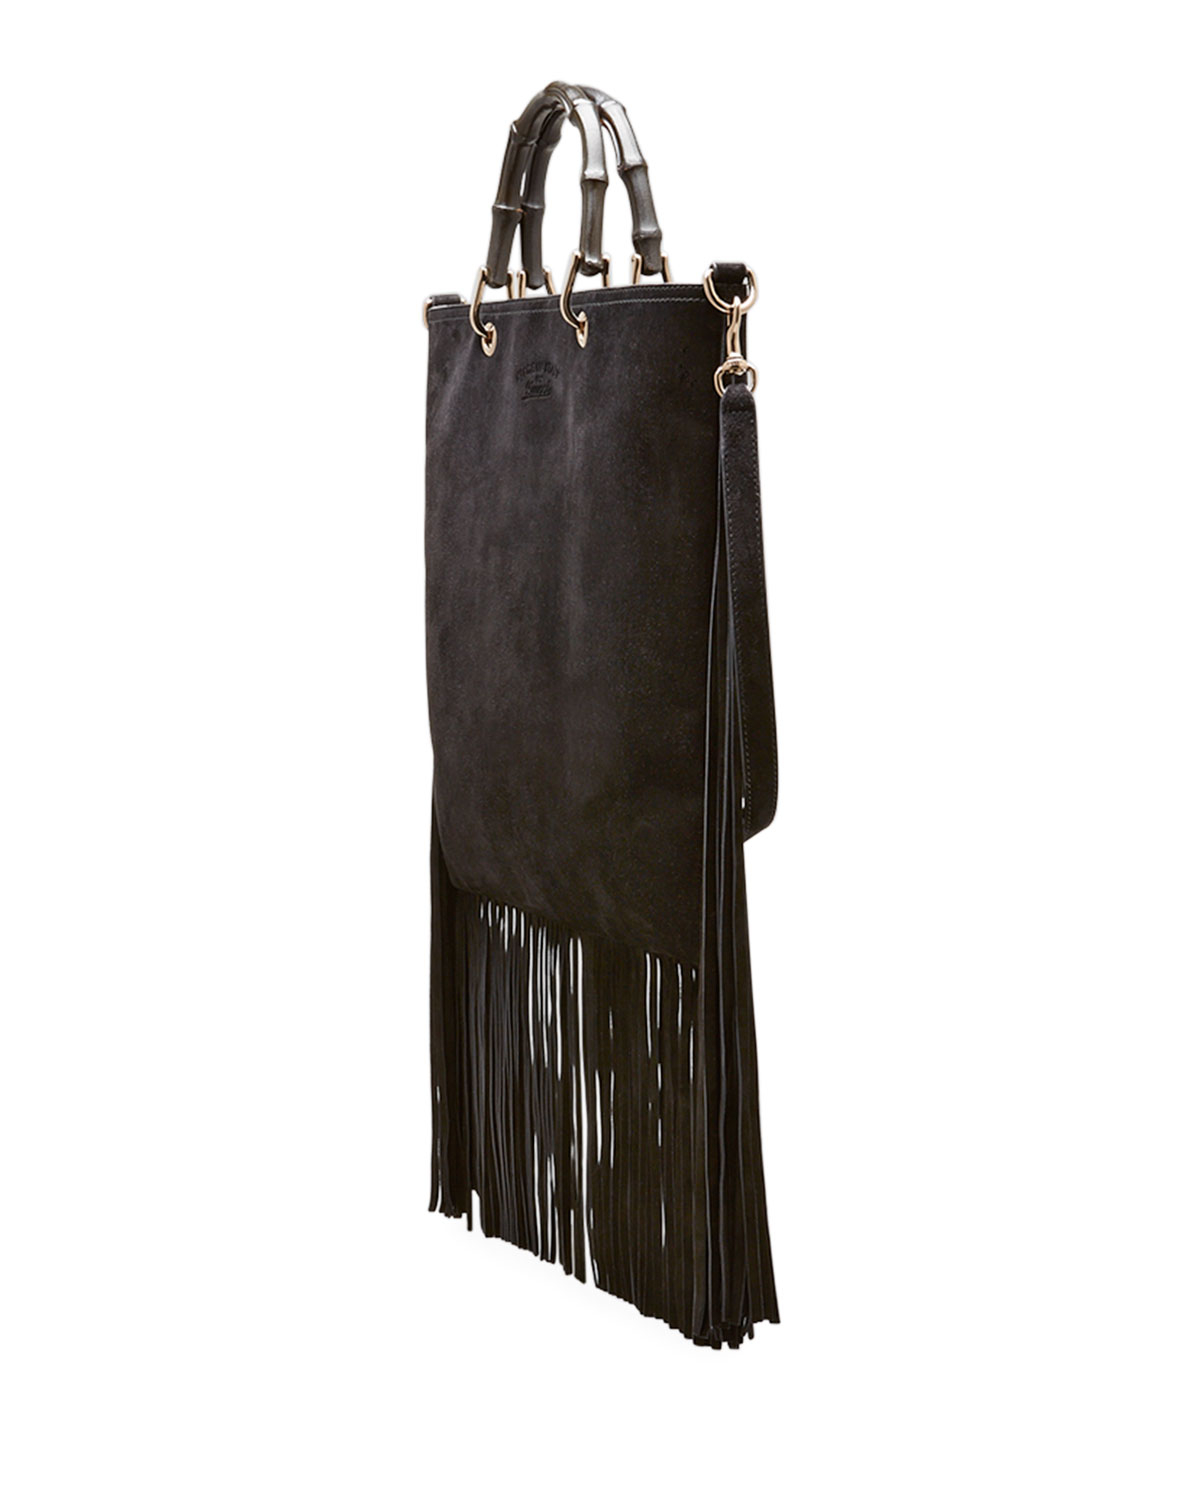 51d7c8f75 Gallery. Previously sold at: Bergdorf Goodman · Women's Fringed Bags ...